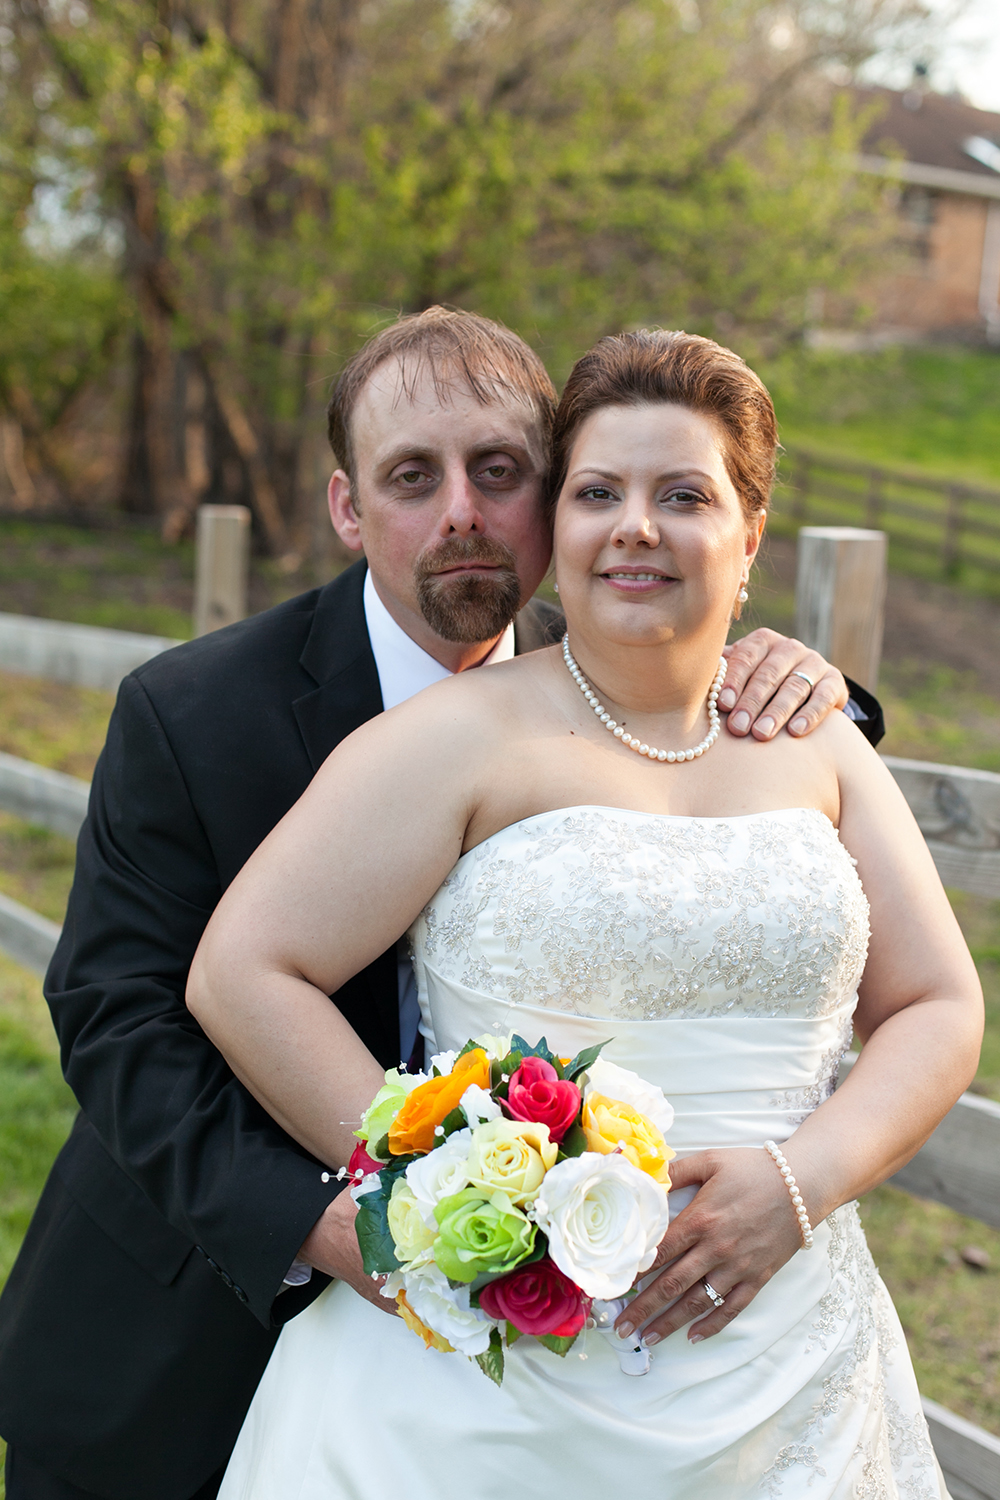 Greene_Bride&Groom-101.jpg